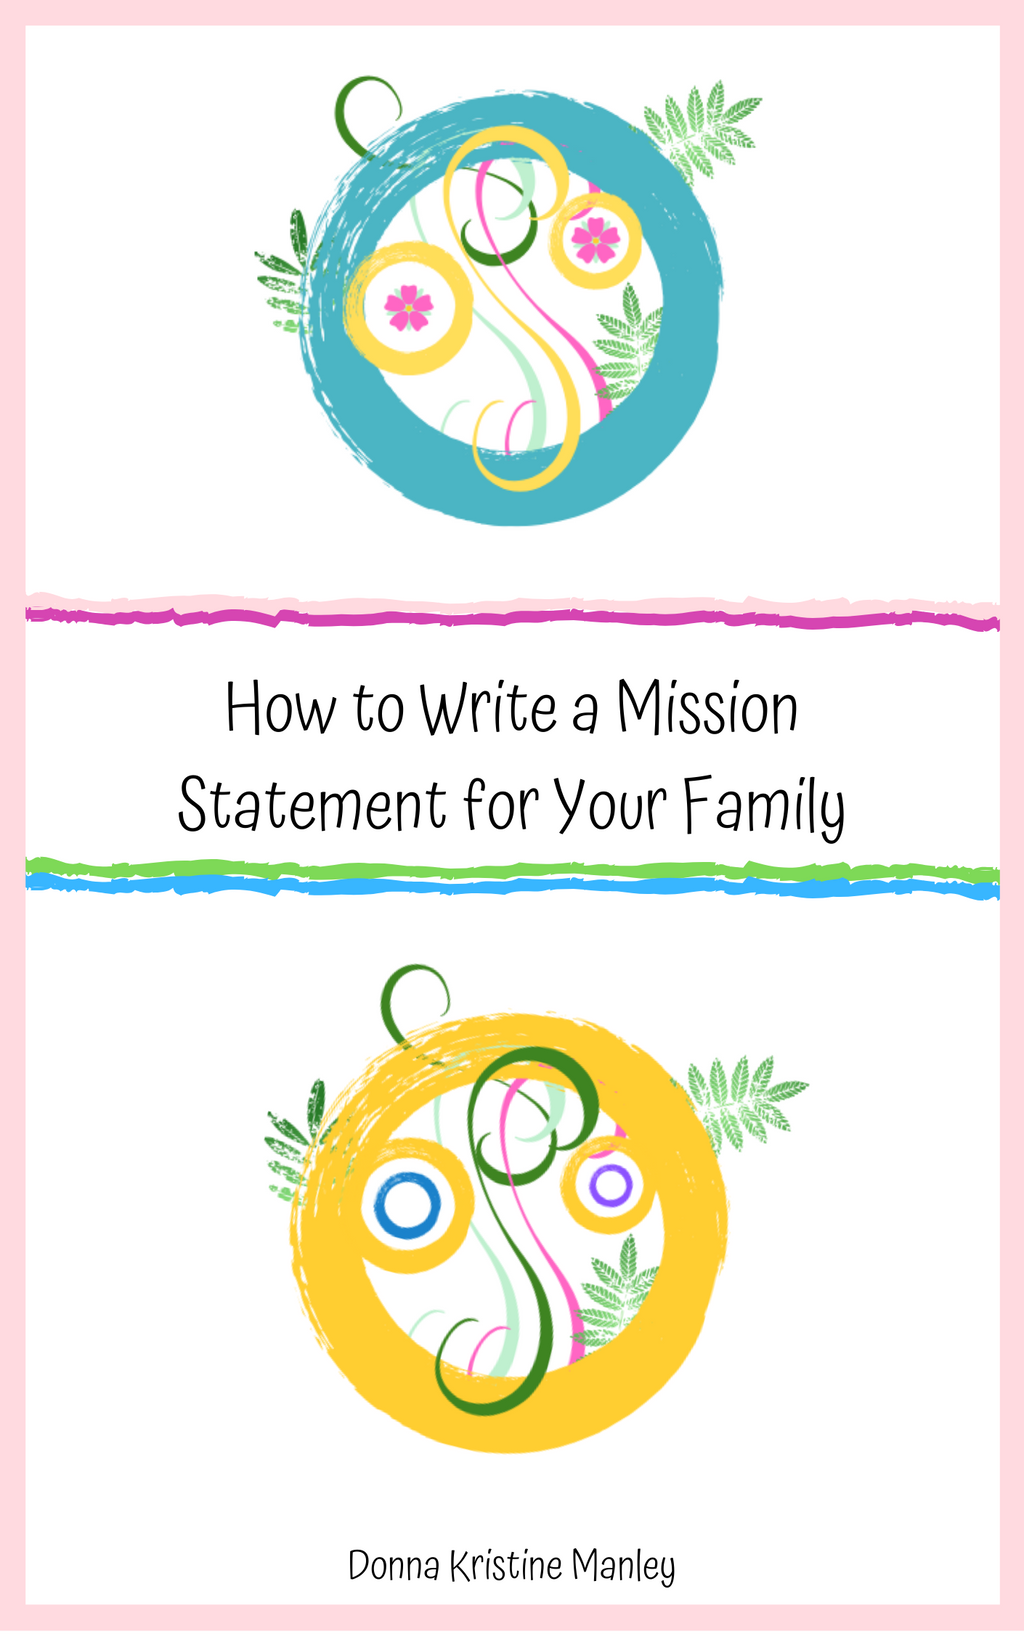 How to Write a Mission Statement for Your Family (ebook, 13 pages)